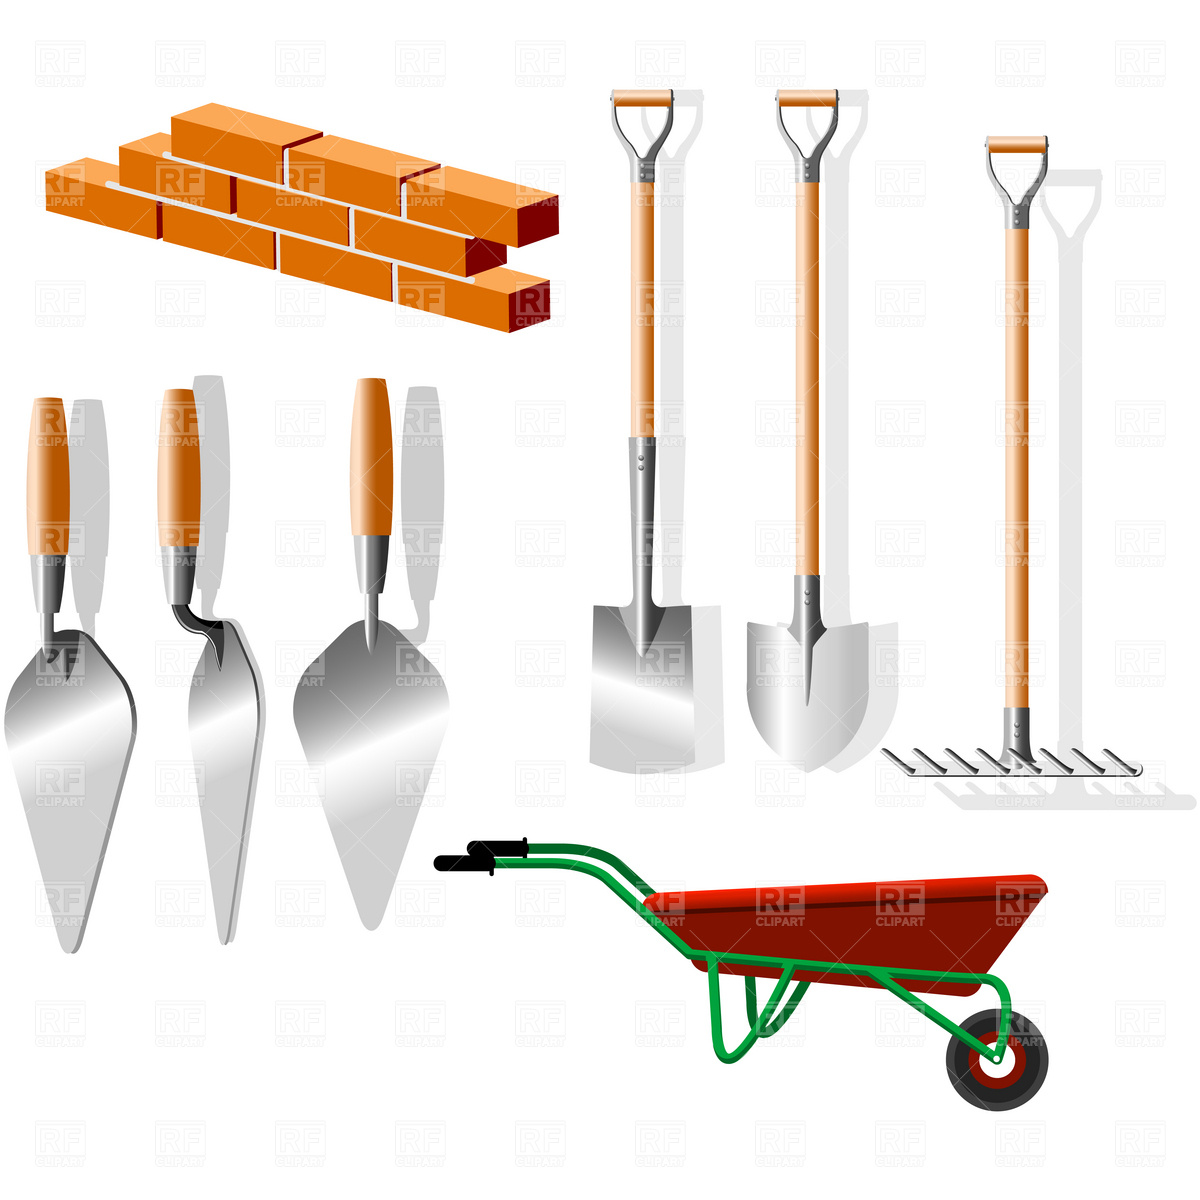 Building materials clipart clipground for Materials needed to build a house